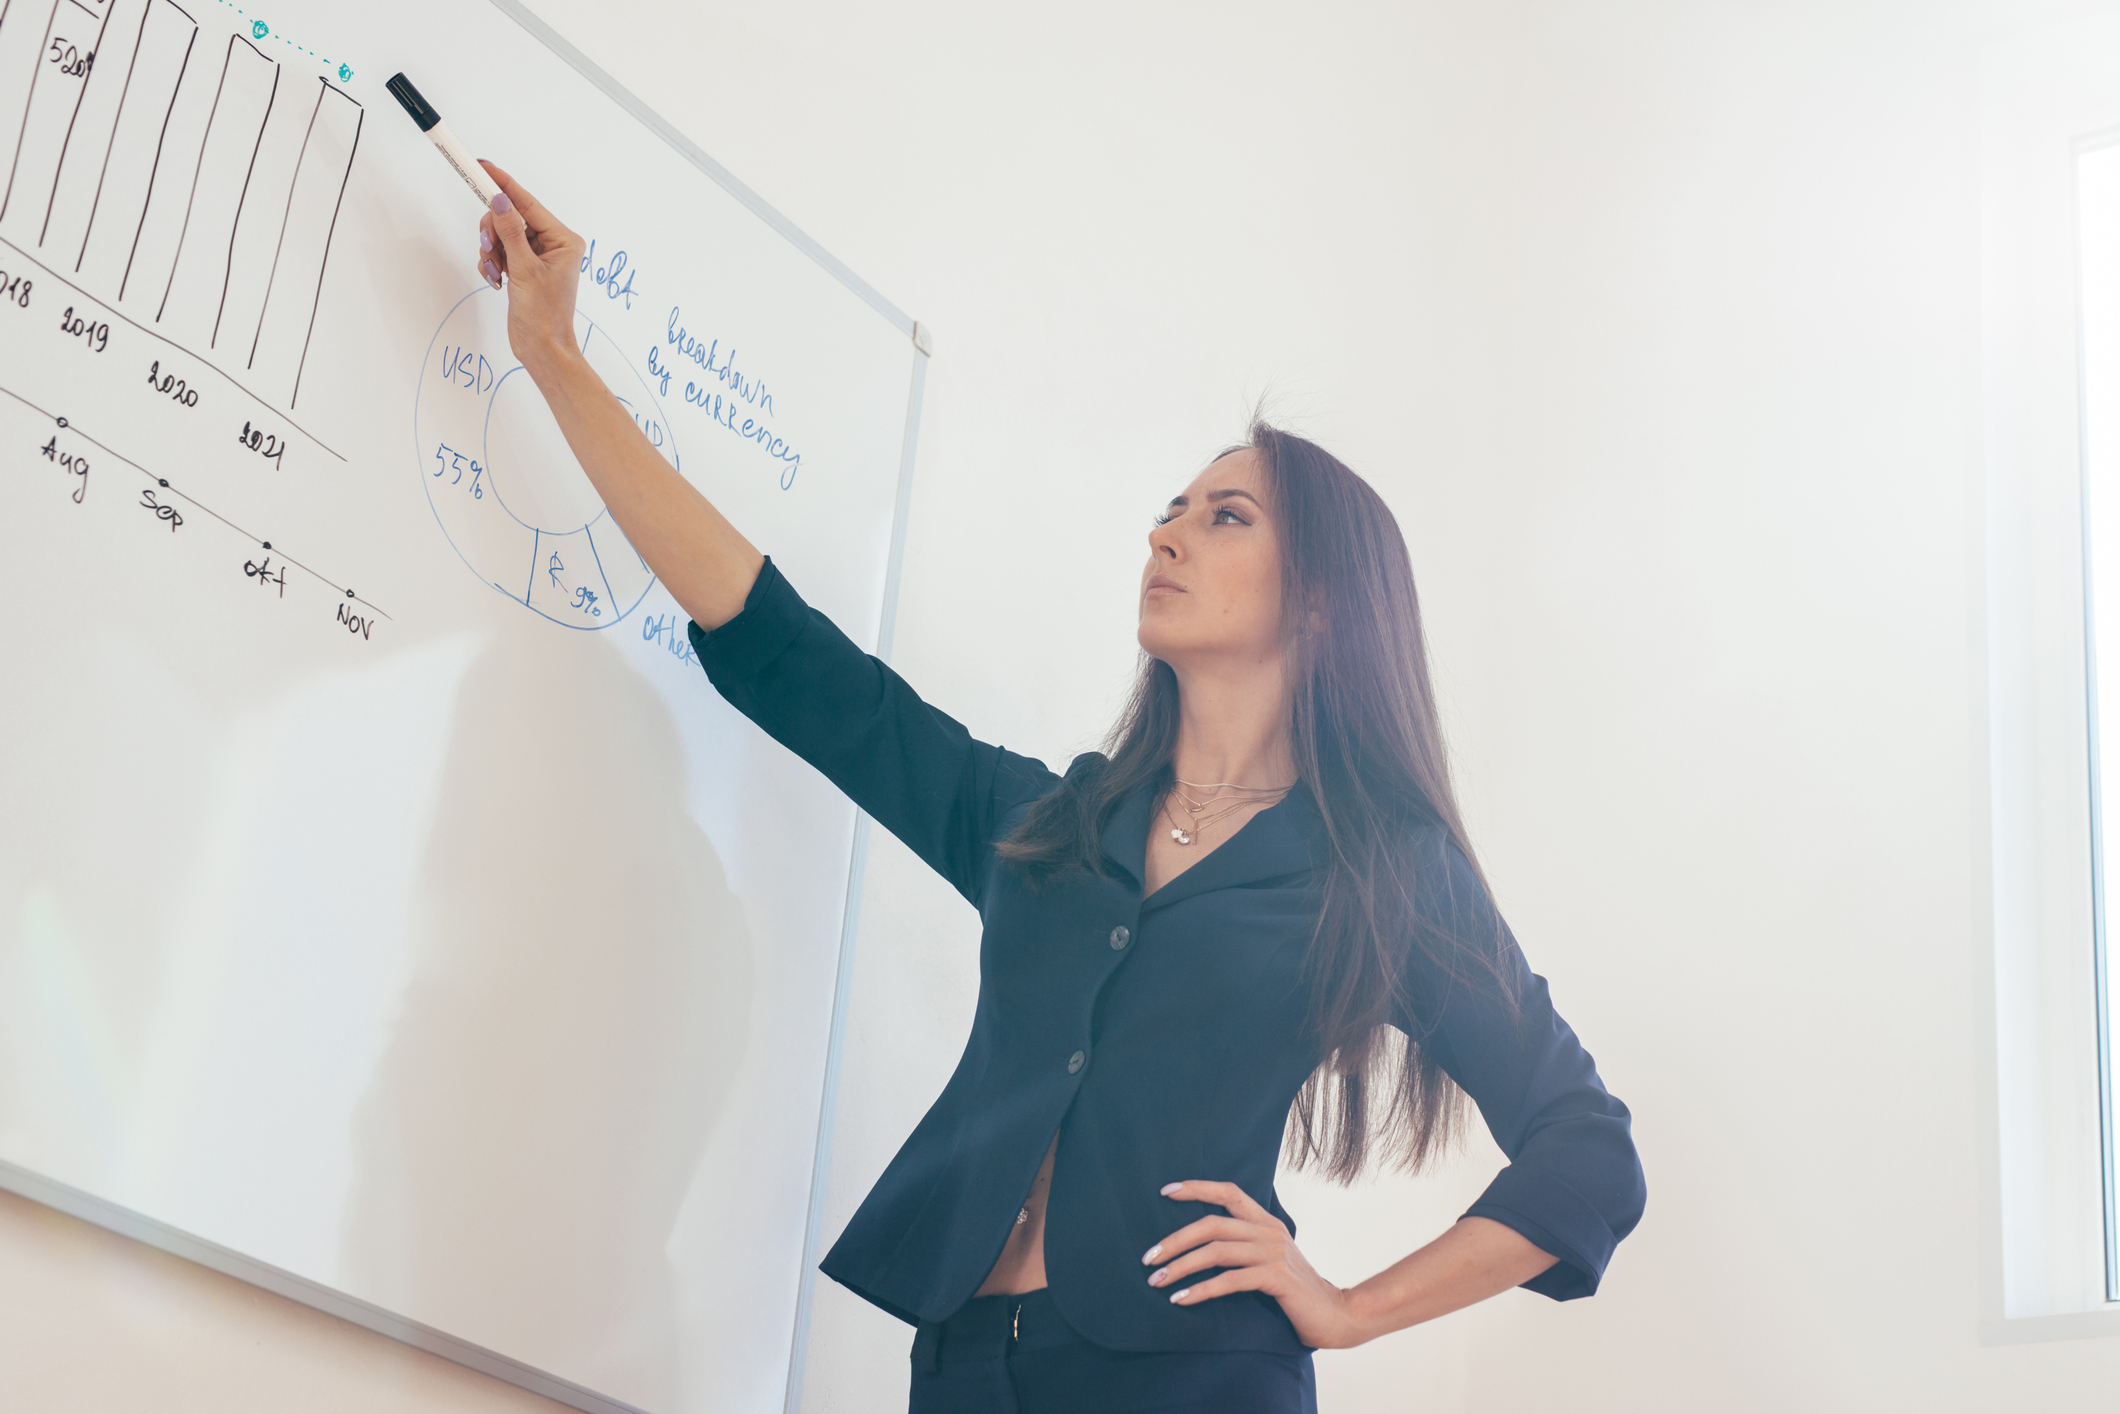 Female teacher giving a lecture showing presentation on whiteboard.